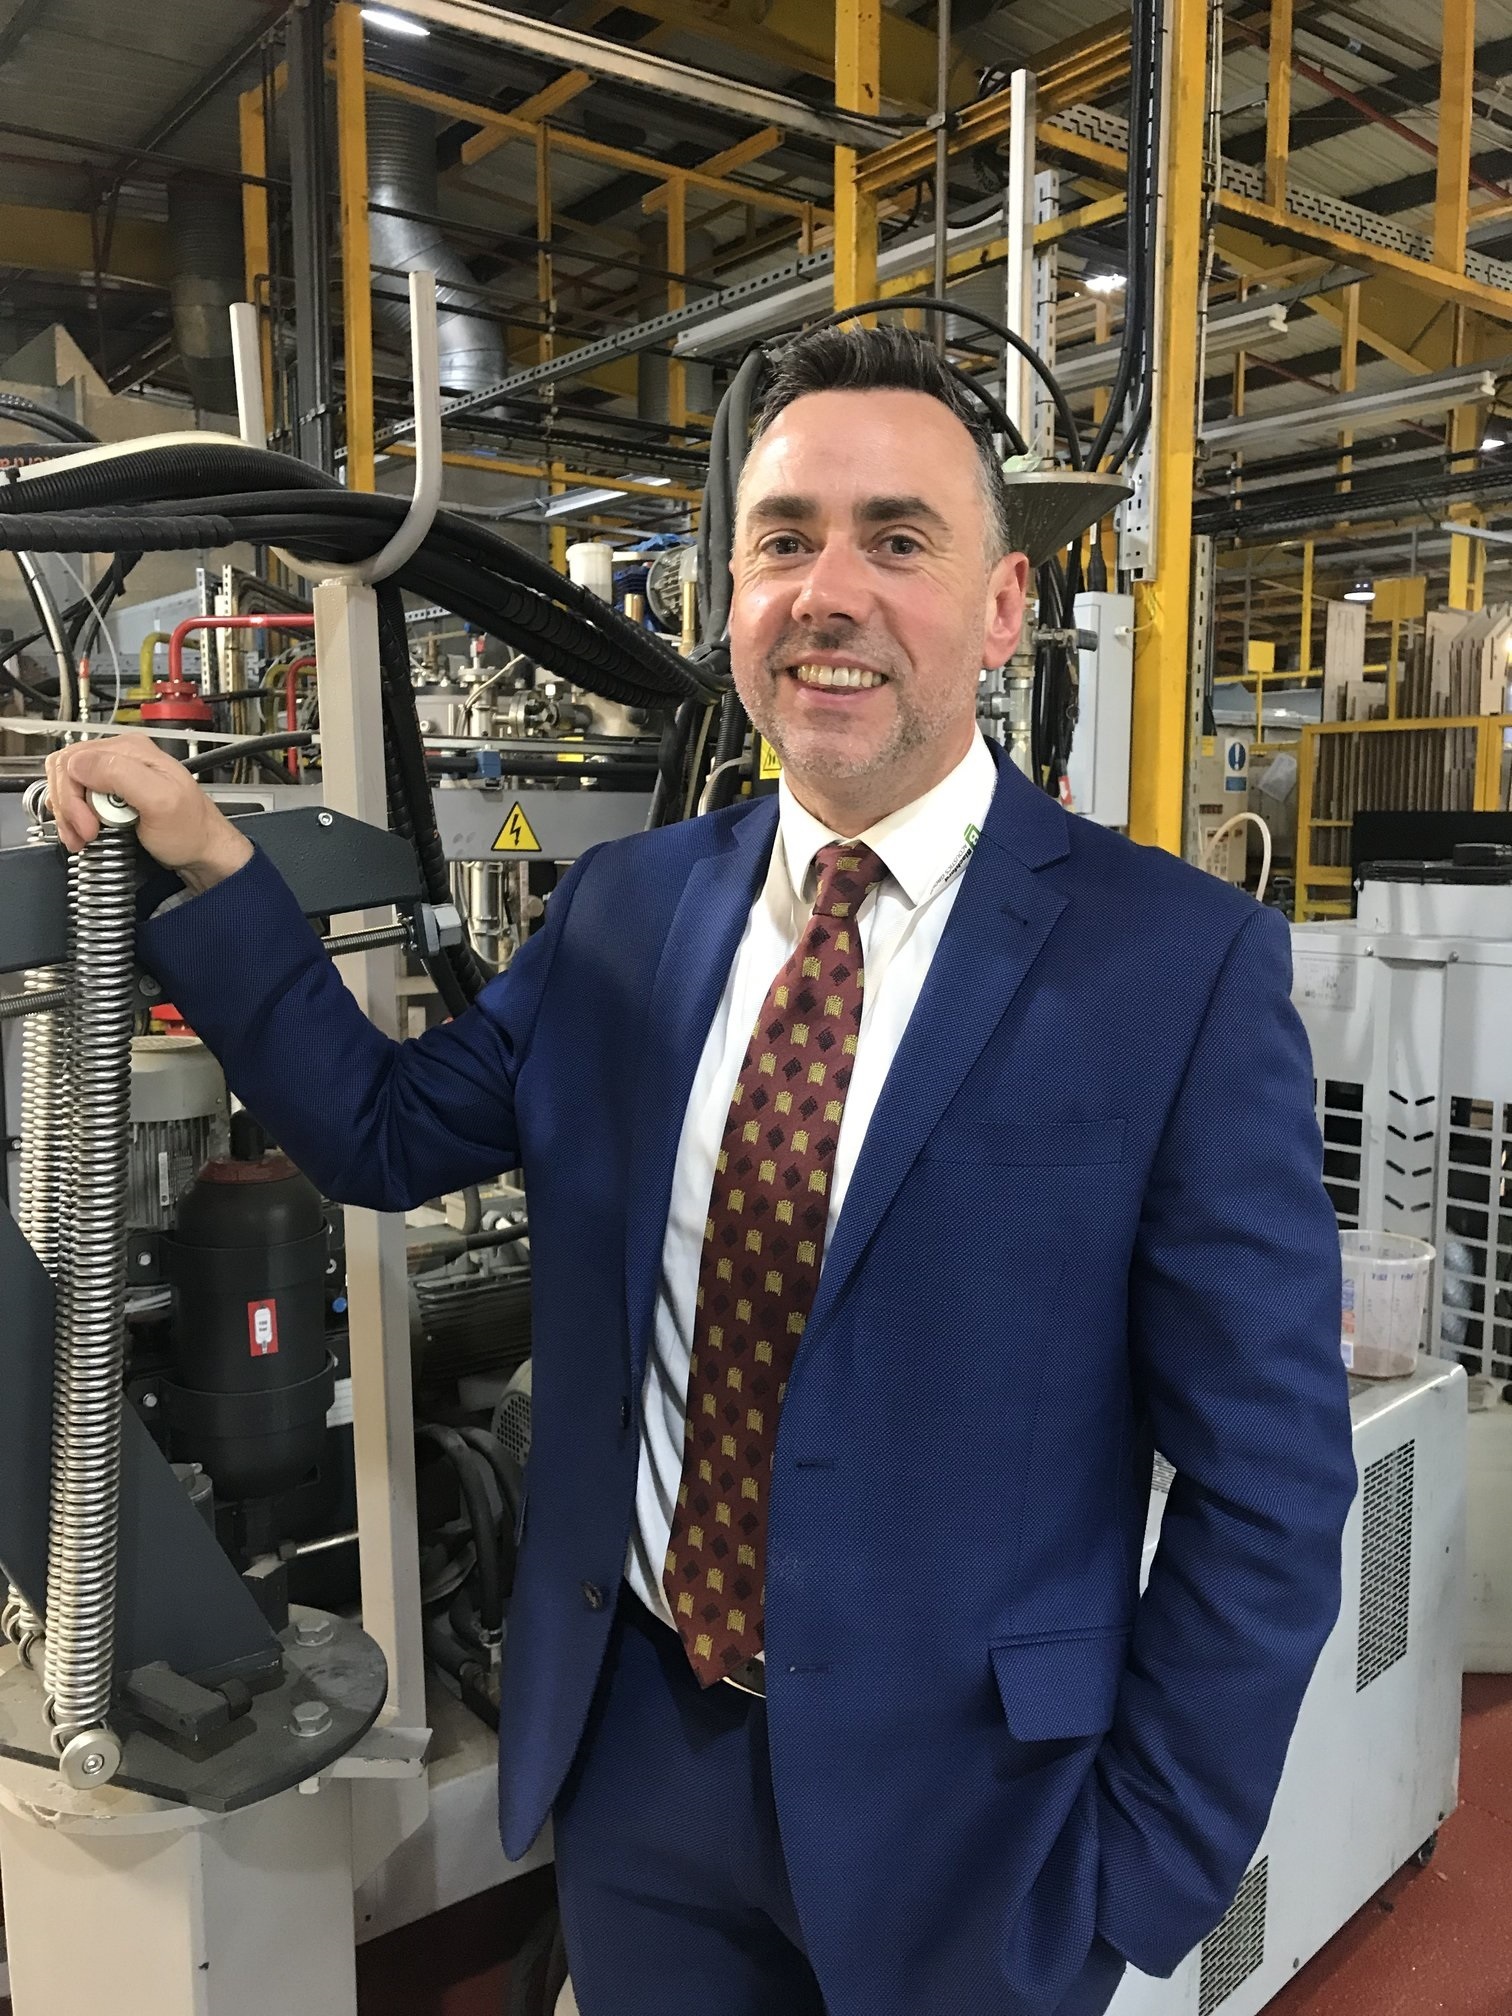 Booming post lockdown order book prompts recruitment drive at Chesterfield manufacturer